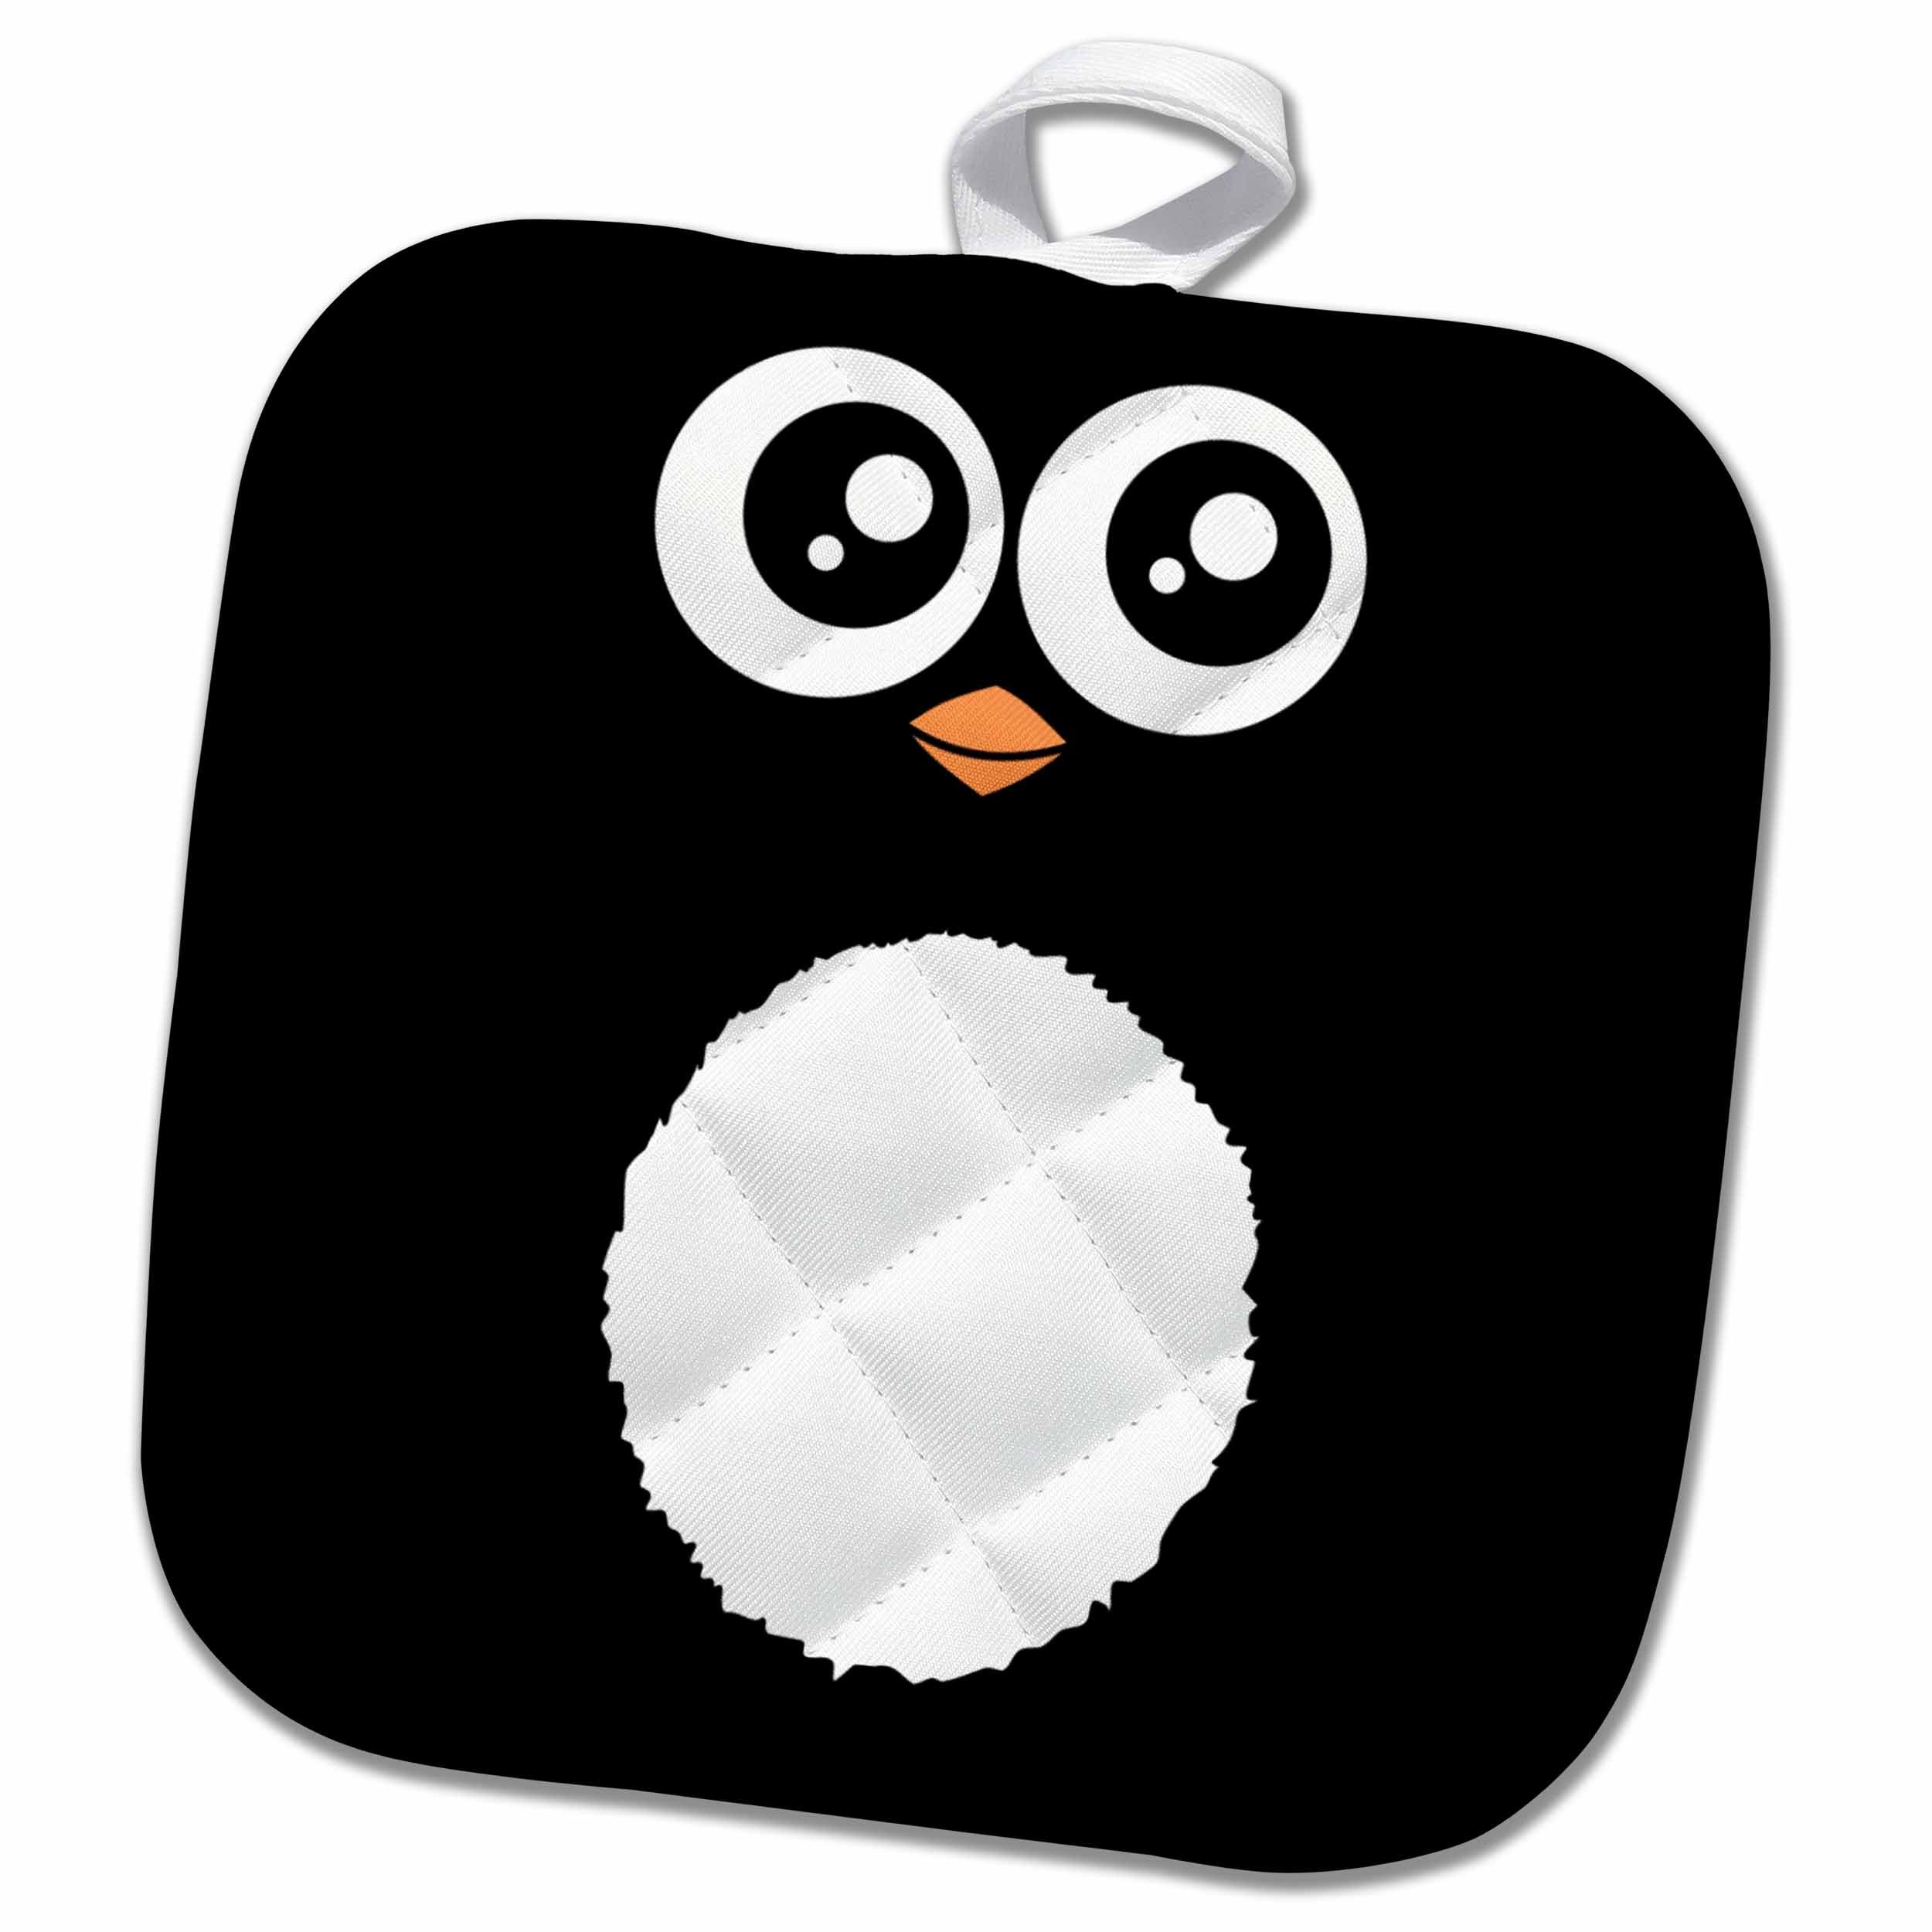 3D Rose Cute Black Cartoon - Kawaii Sweet Animal Square - Adorable for Kids and Children - Penguins Pot Holder, 8 x 8